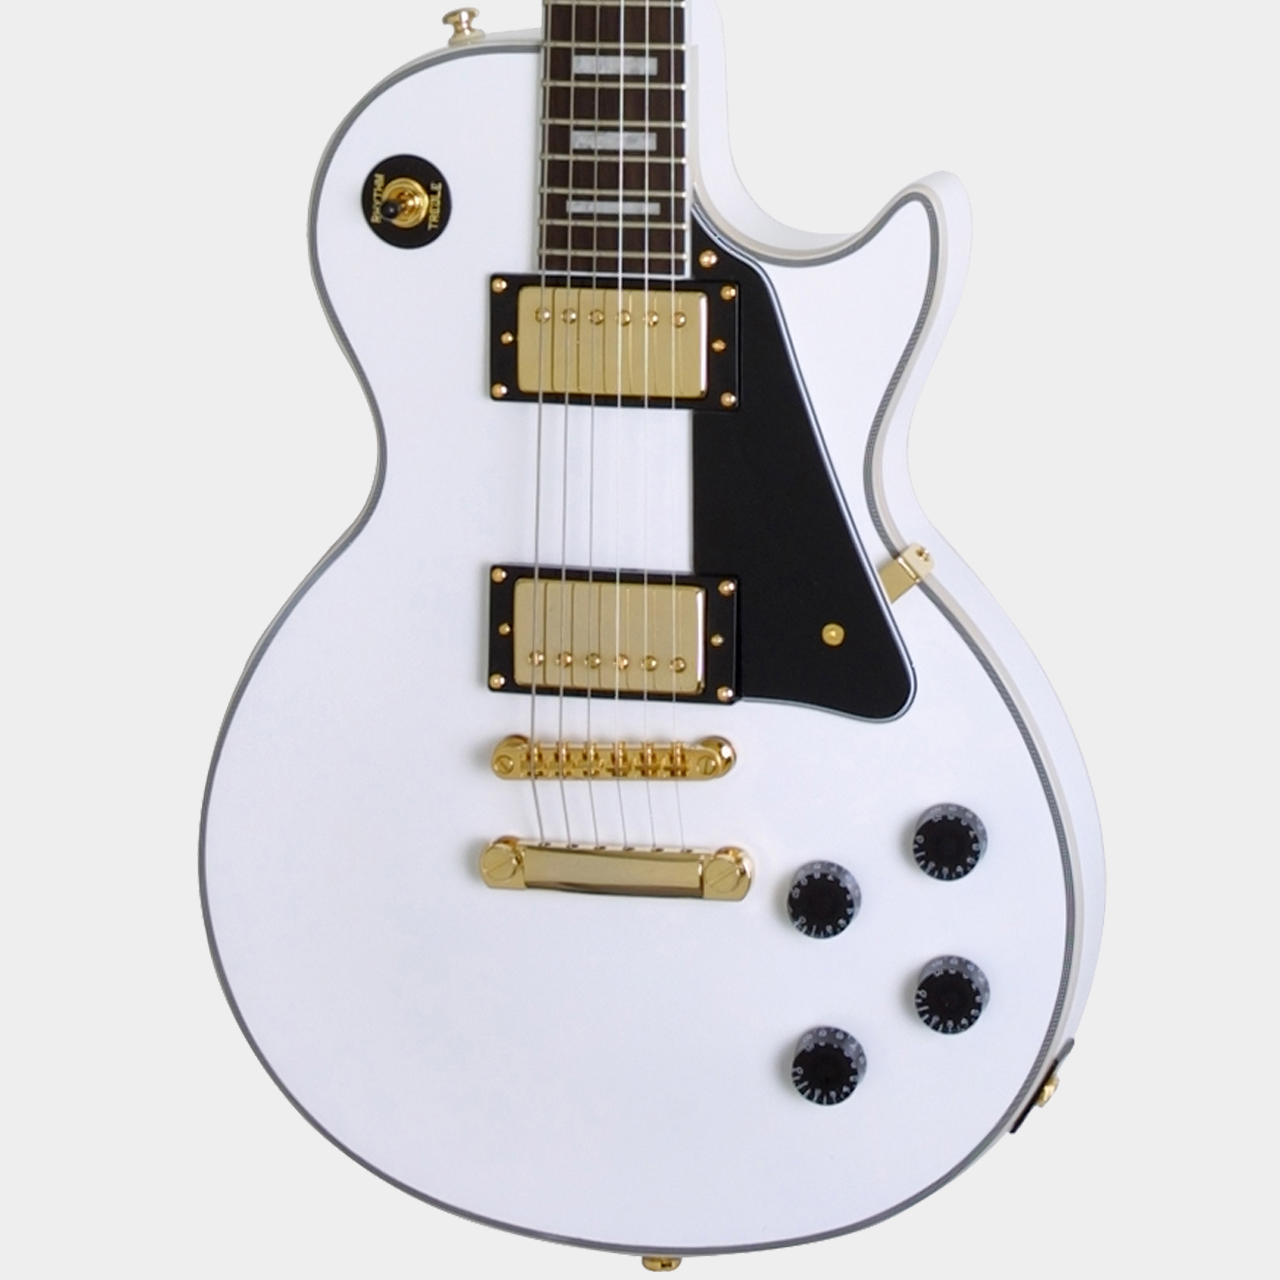 EPIPHONE Les Paul Custom PRO Alpine White Body